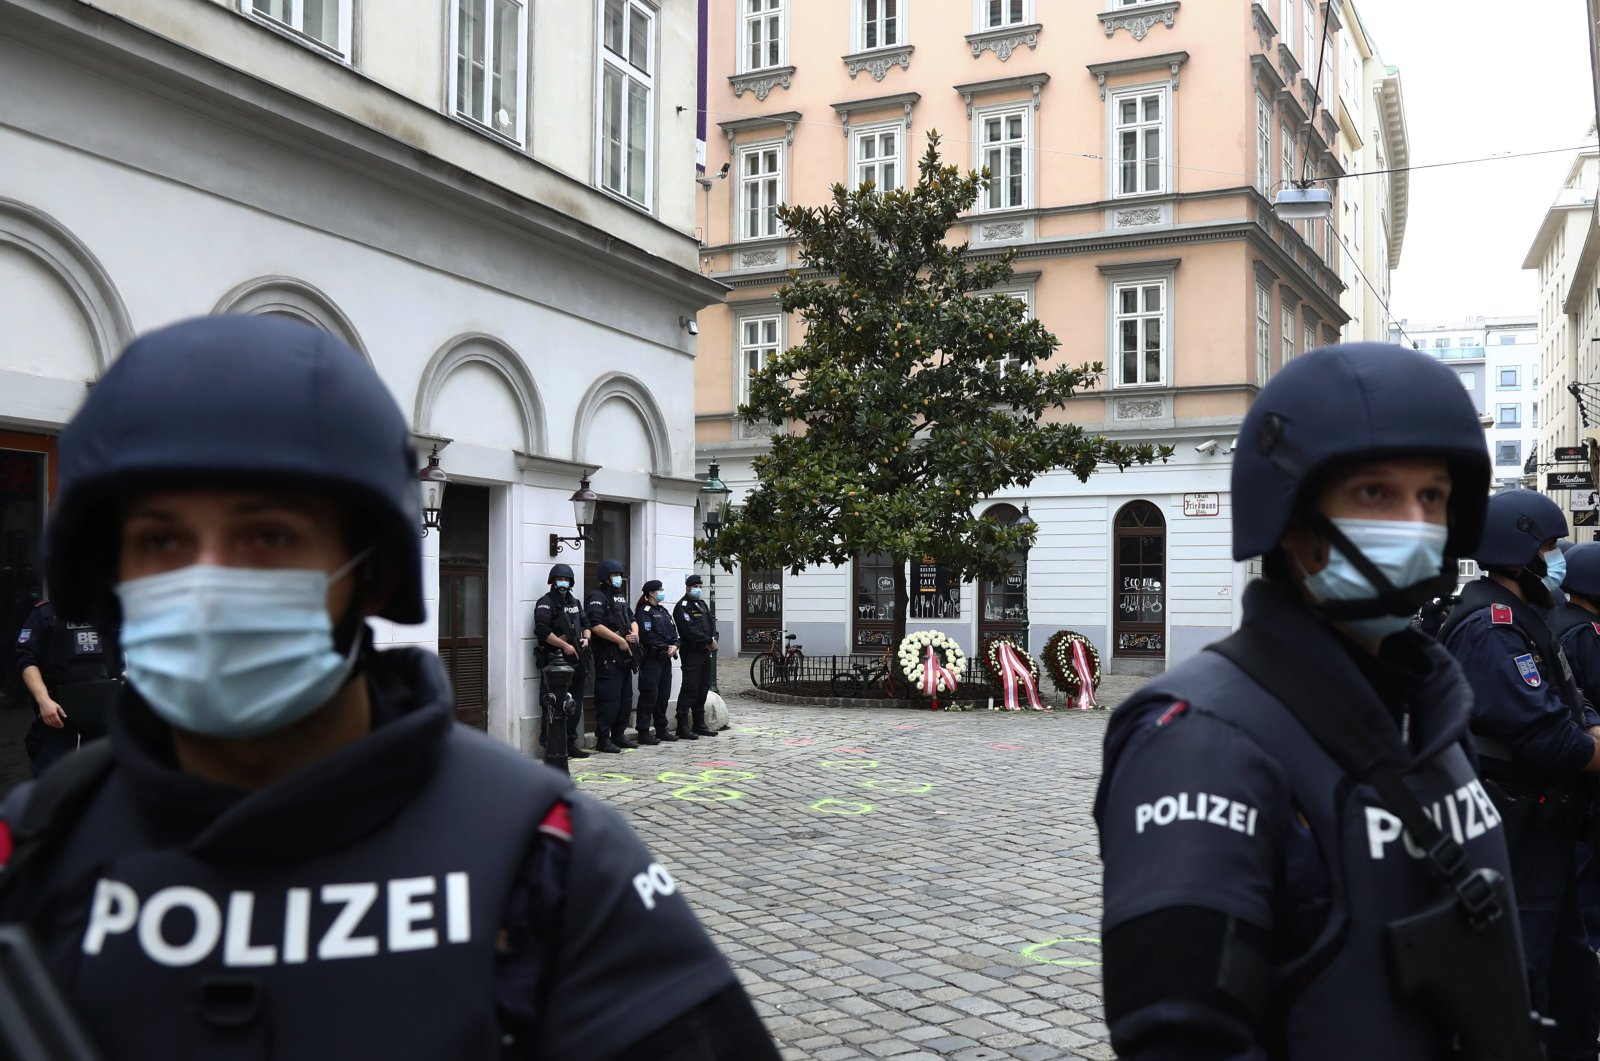 Police officers stand guard in Vienna, Austria, Nov. 3, 2020. (AP Photo)